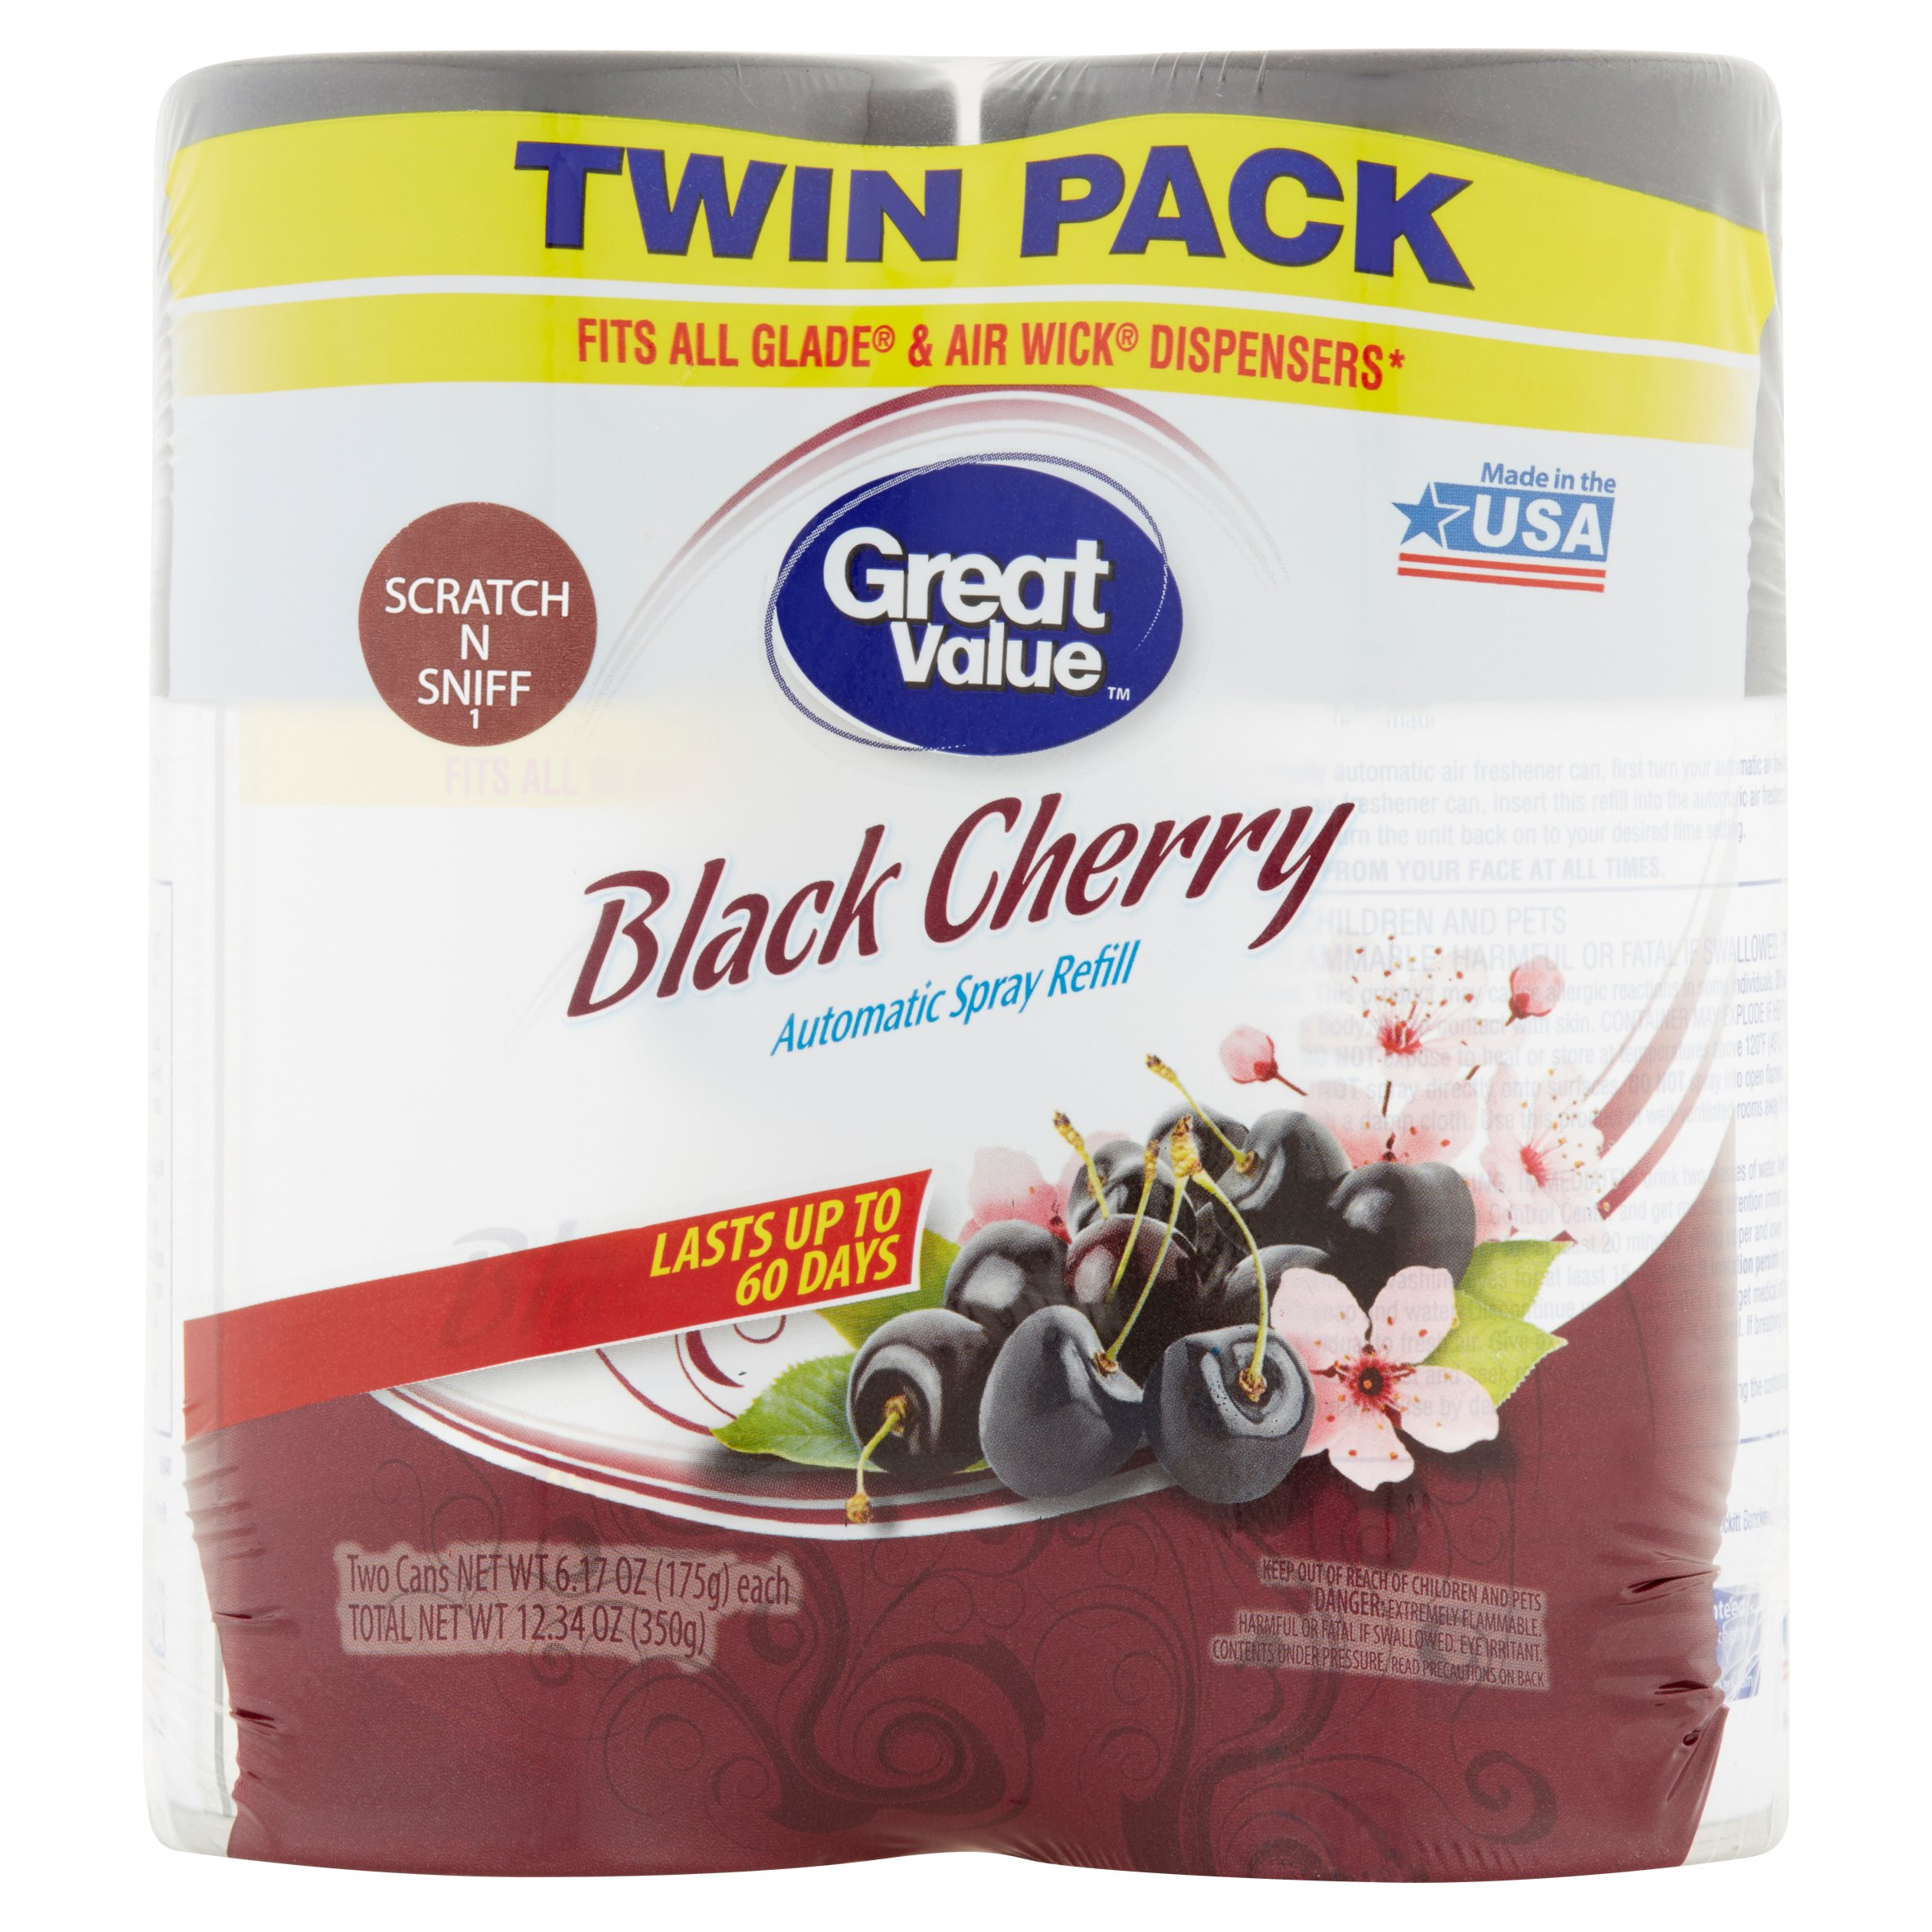 Great Value Black Cherry Automatic Spray Refill, 6.17 oz, 2 Count